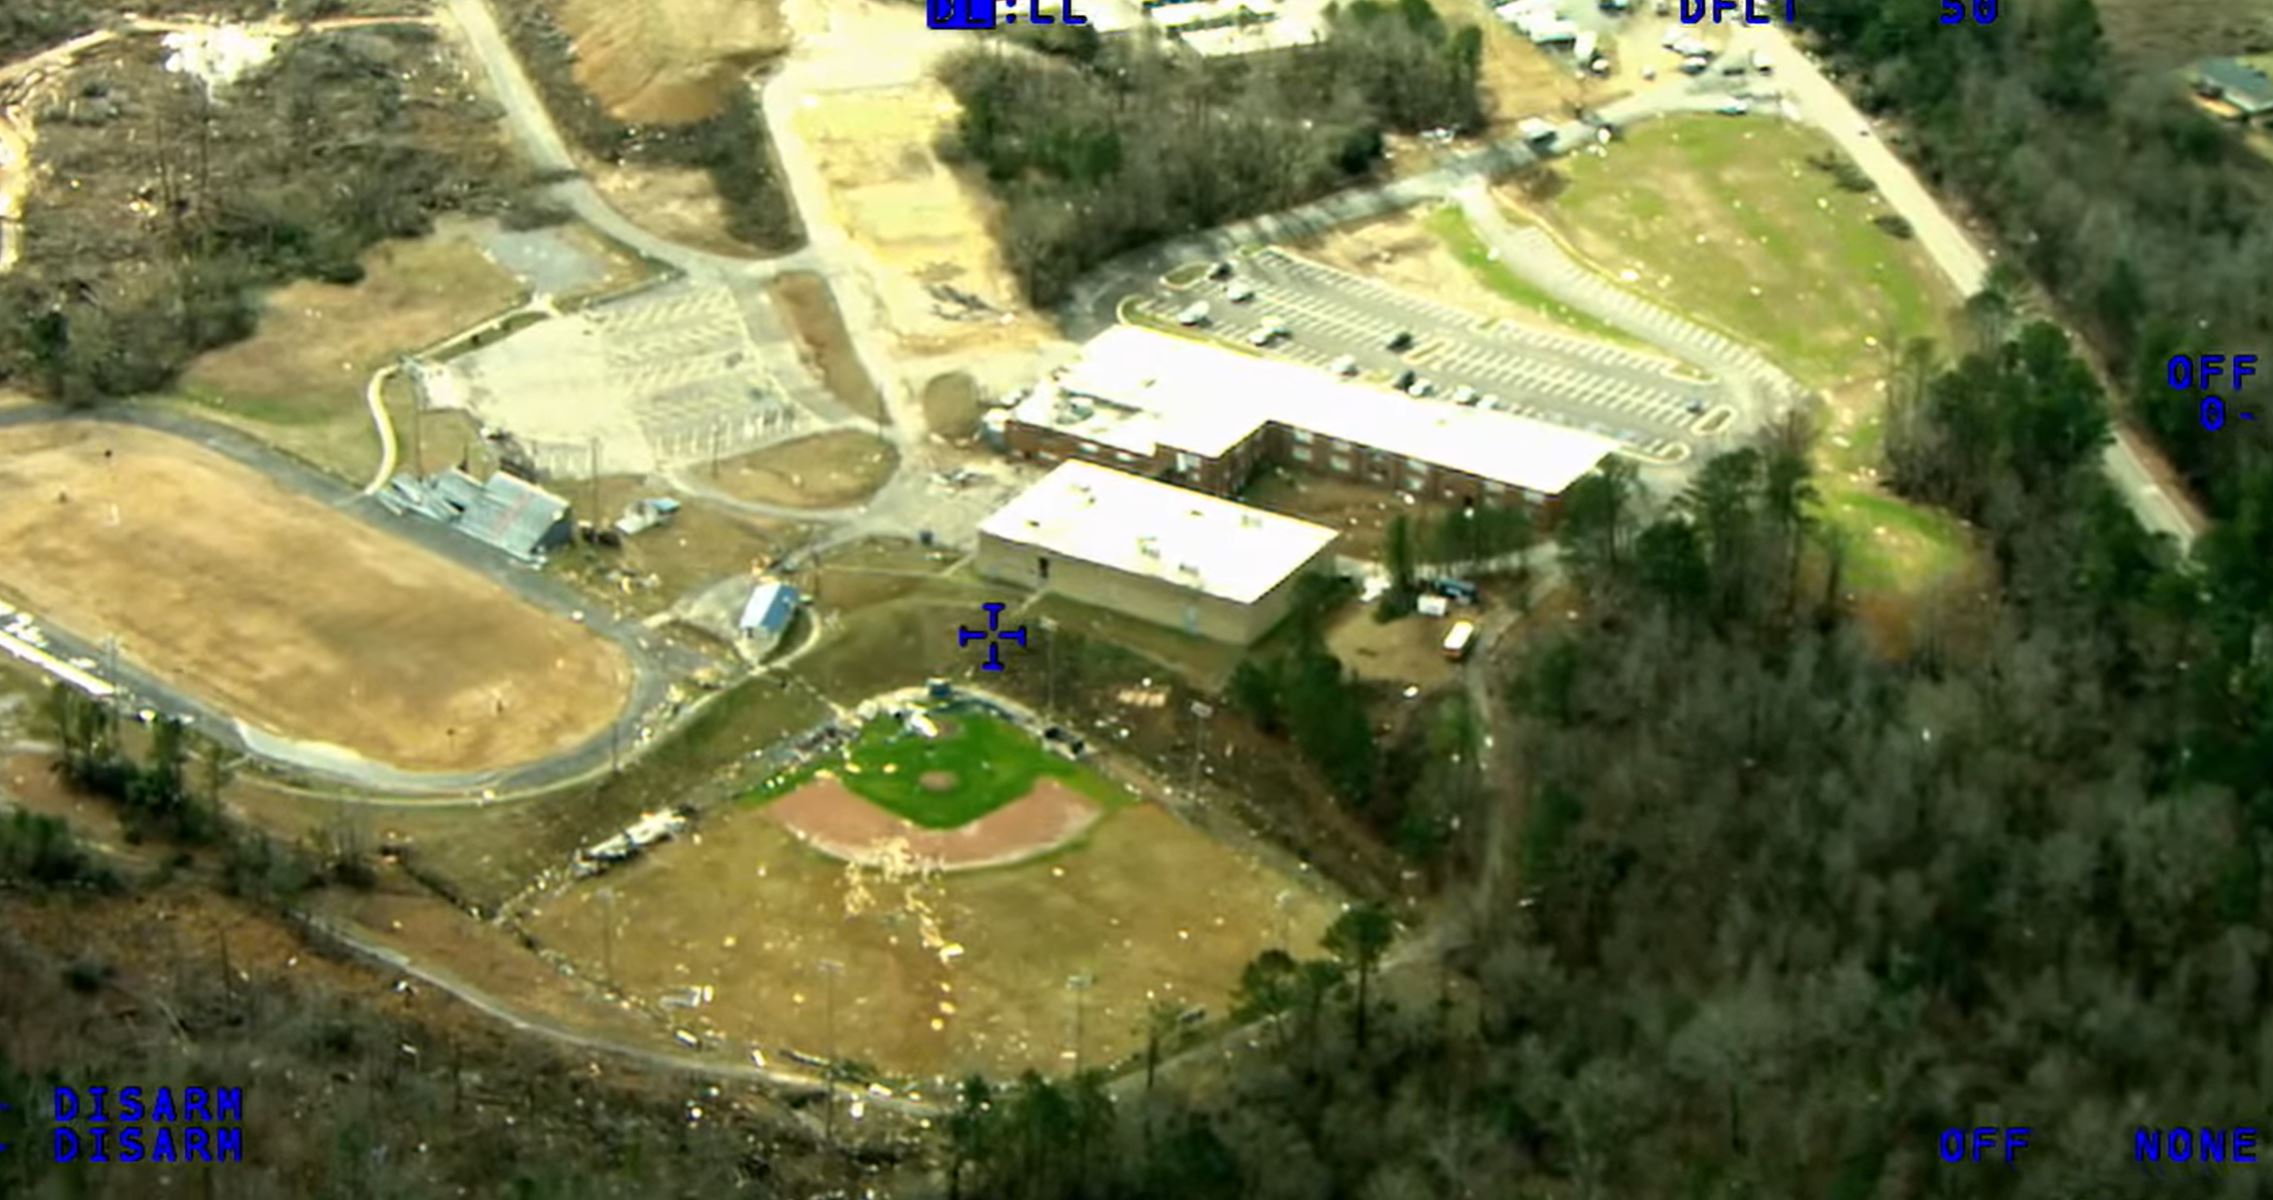 Jefferson County Schools Superintendent provides update on Fultondale High School